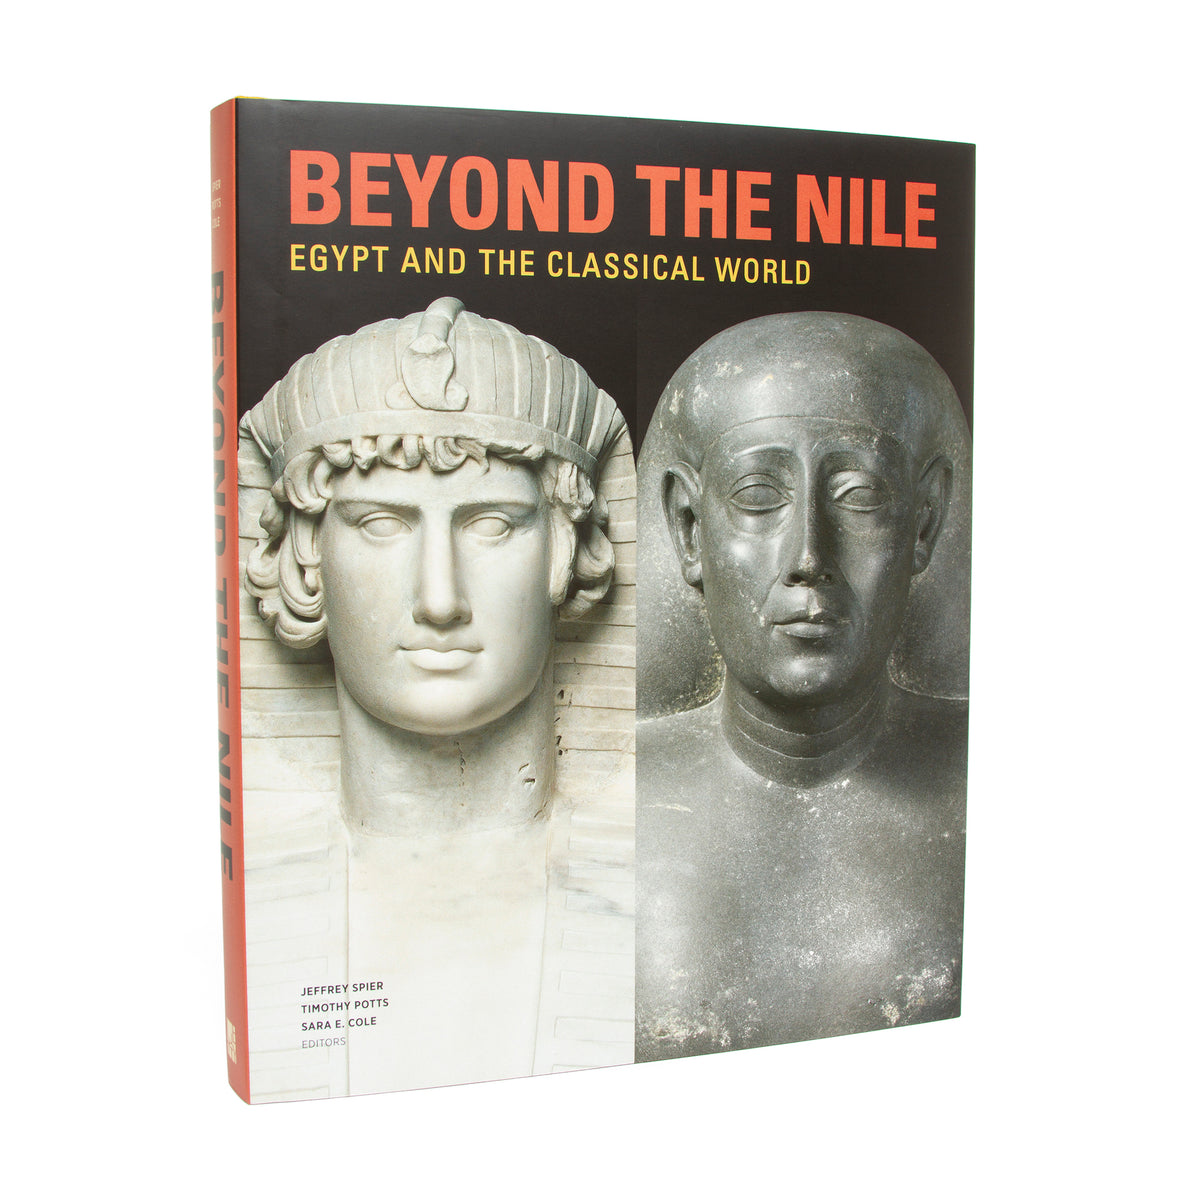 Beyond the Nile: Egypt and the Classical World | Getty Store